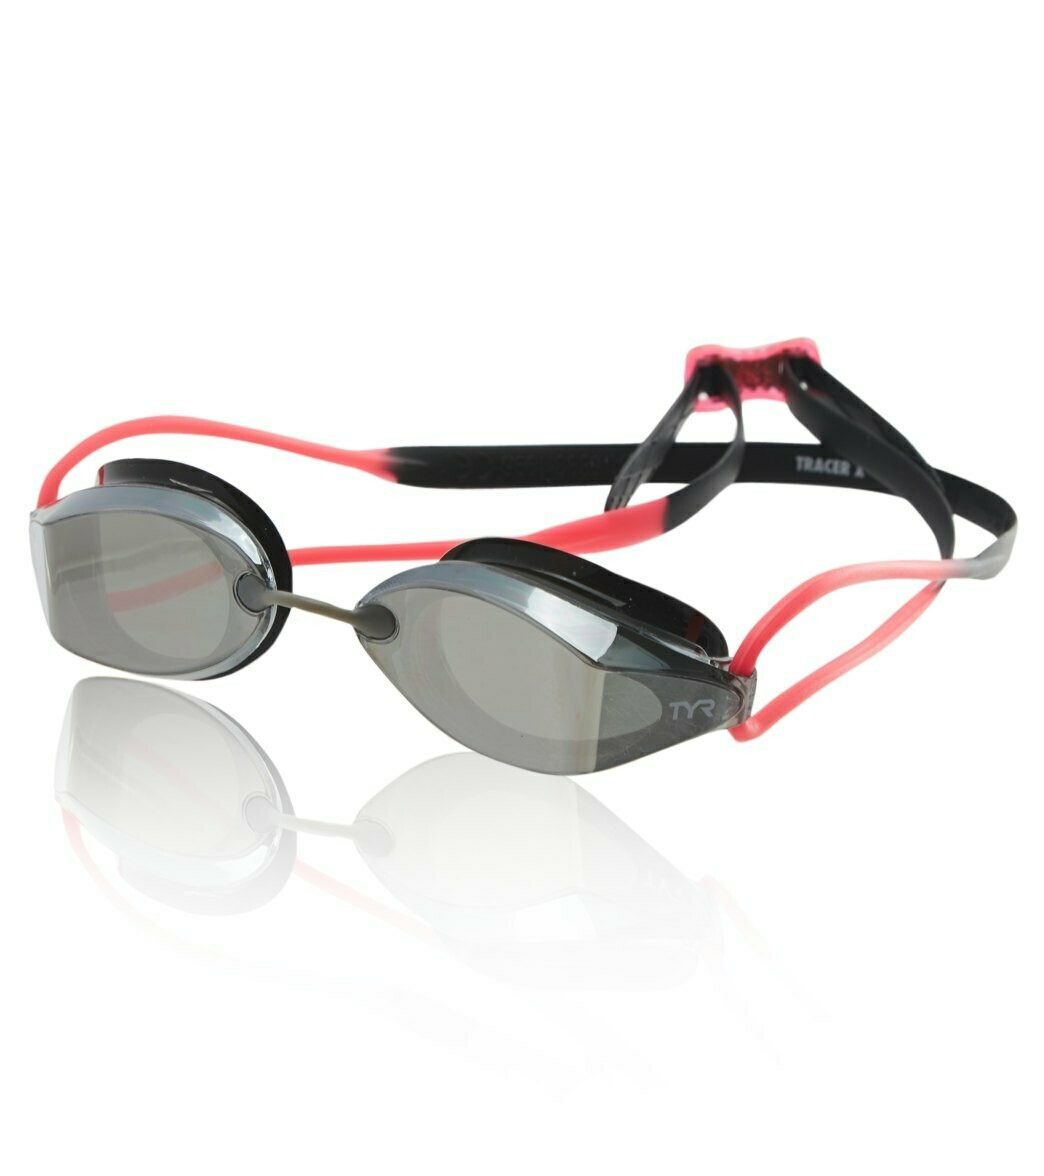 1870088 TRACER X RACING NANO MIRRORED LGTRXNM SILVER/PINK 659